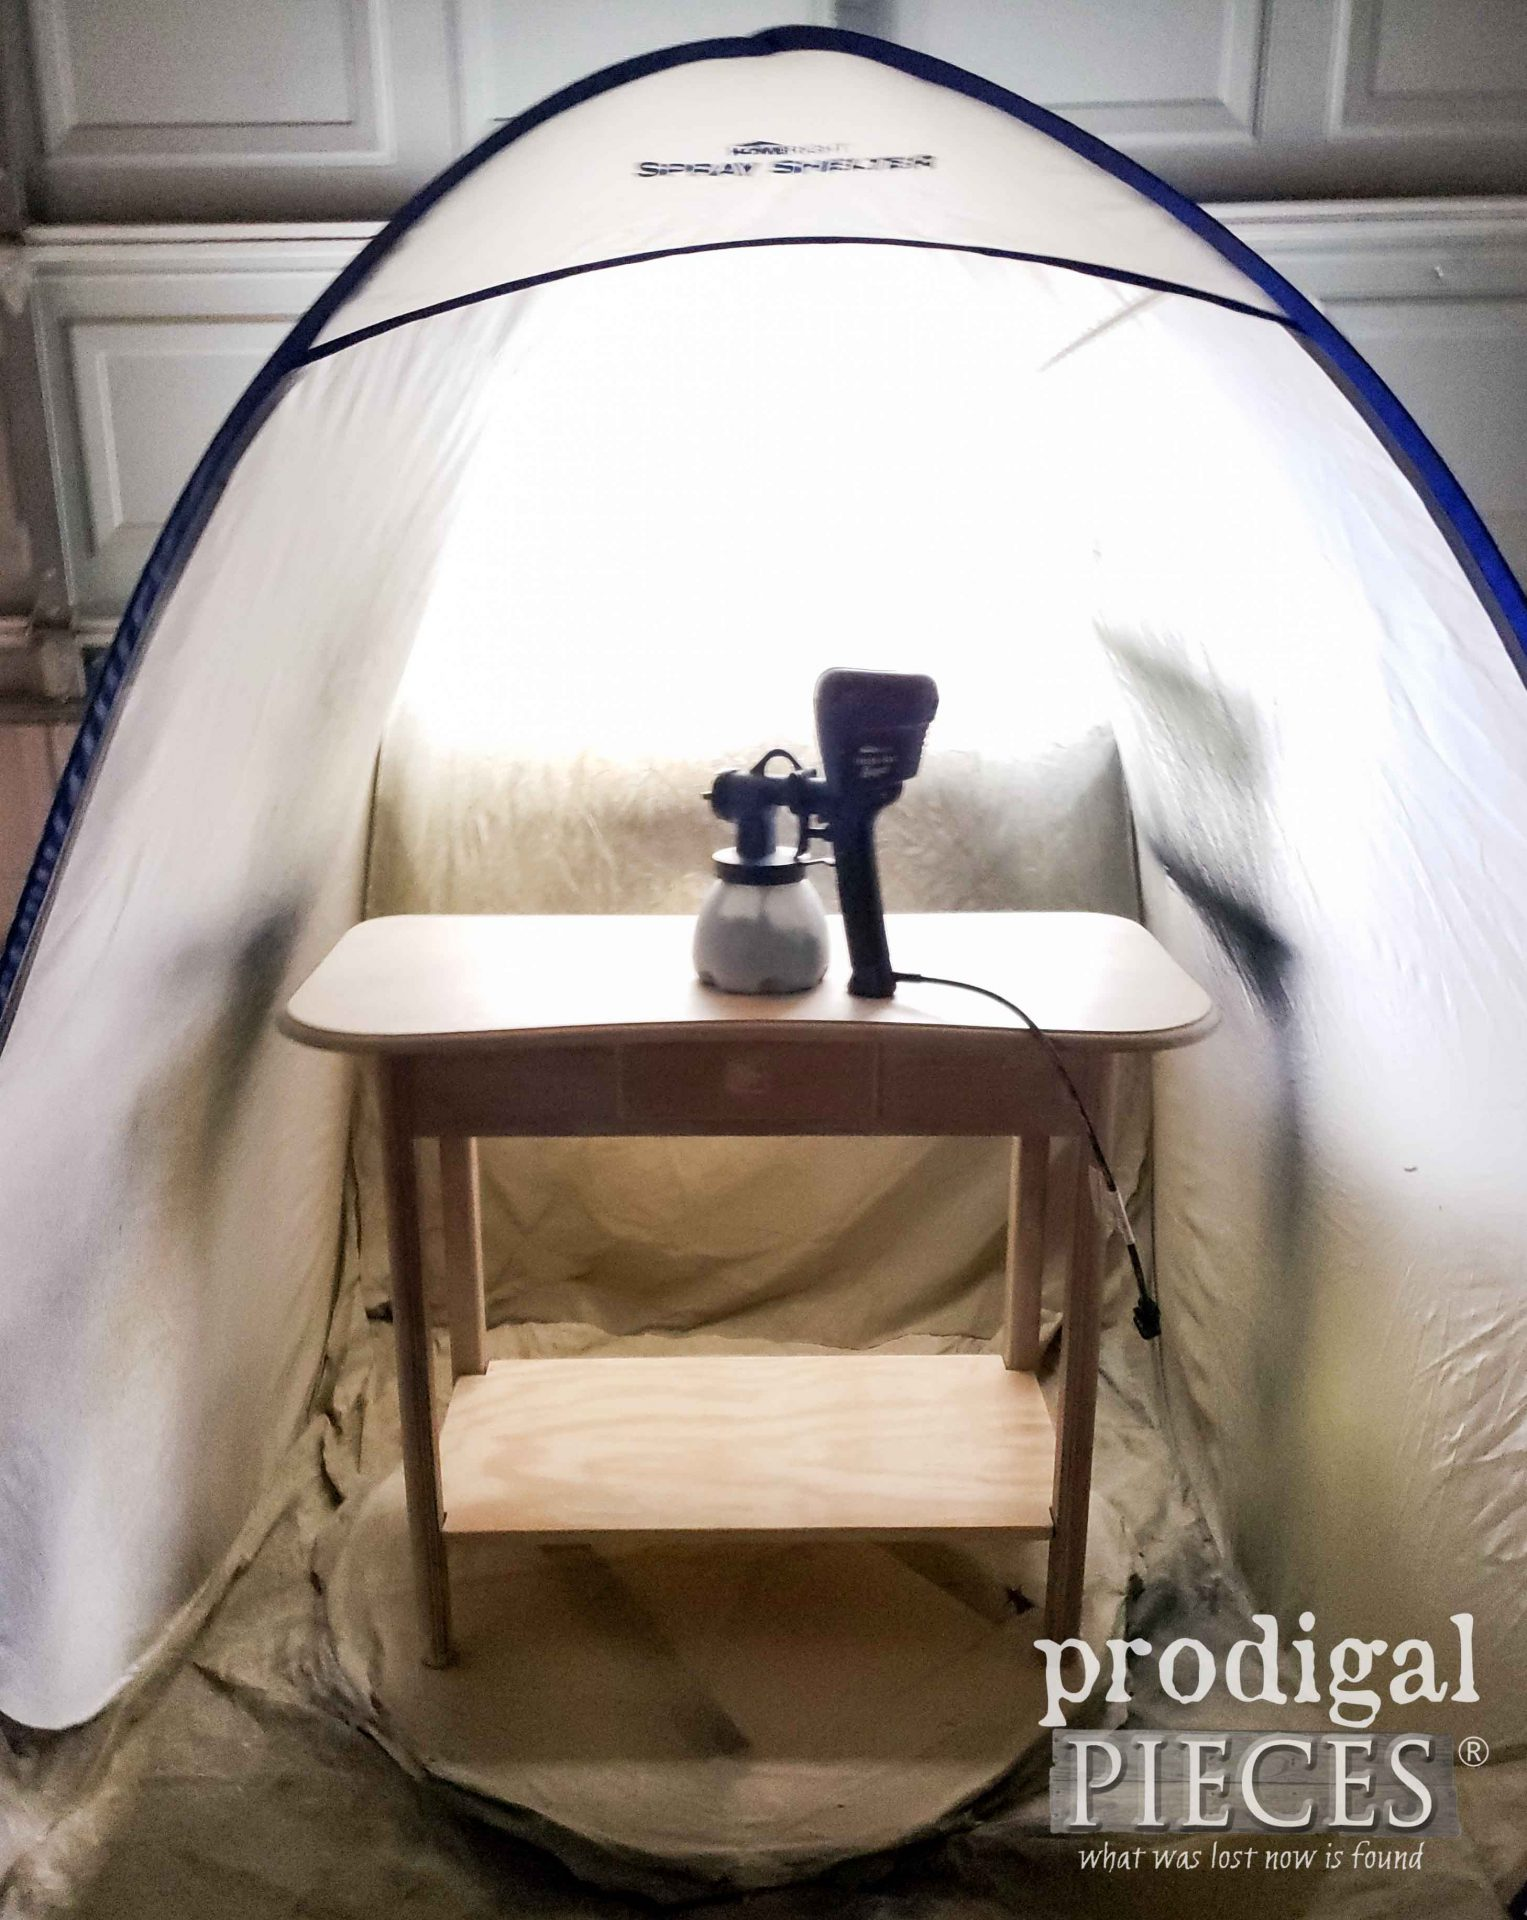 HomeRight Spray Shelter & Sprayer with Repurposed Desk by Larissa of Prodigal Pieces | prodigalpieces.com